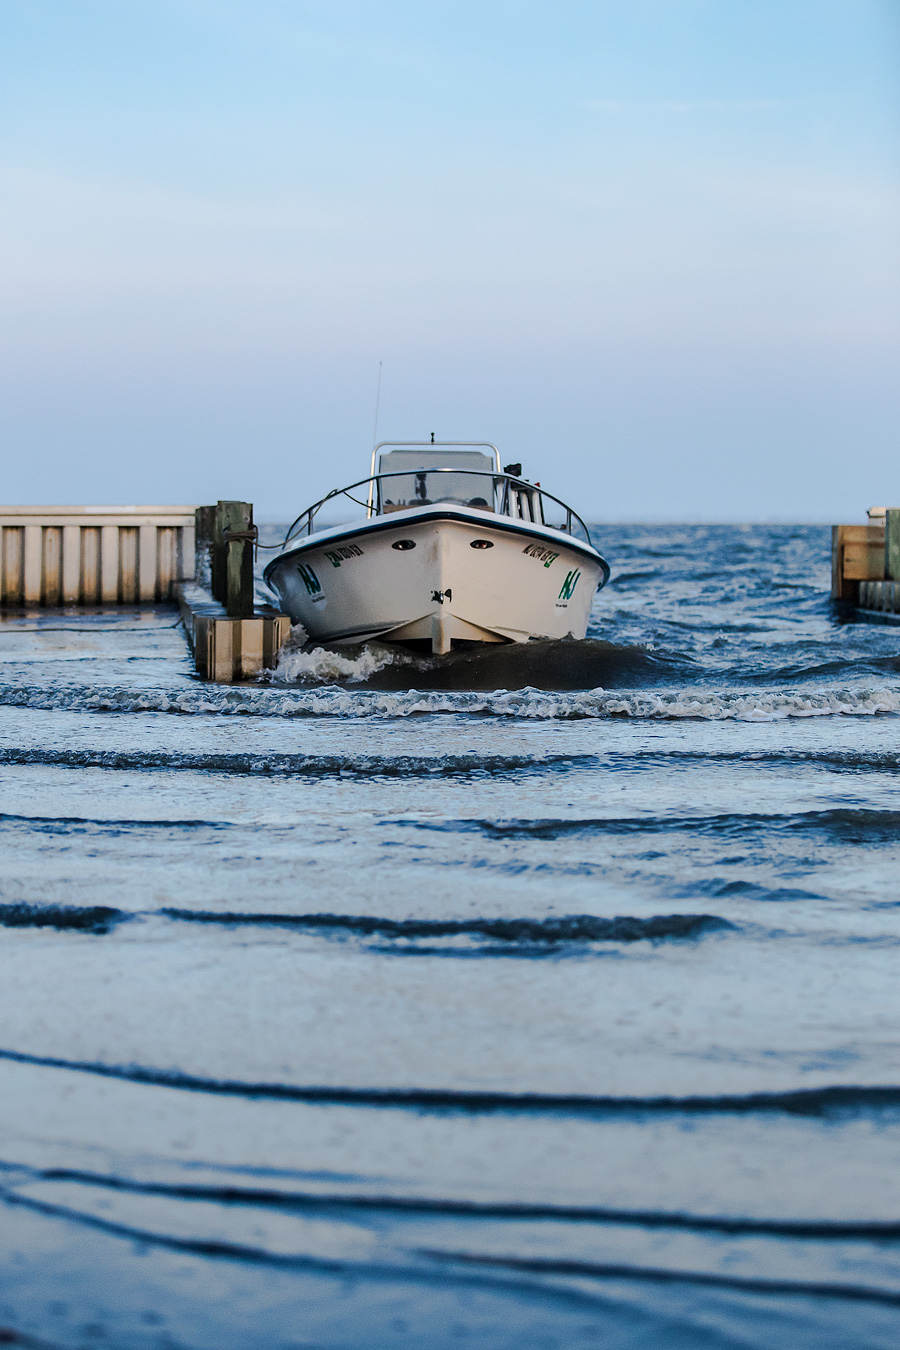 Barnegat Bay has been plagued by brutal Southwest Winds for several weeks, interrupted only by Hurricane Arthur